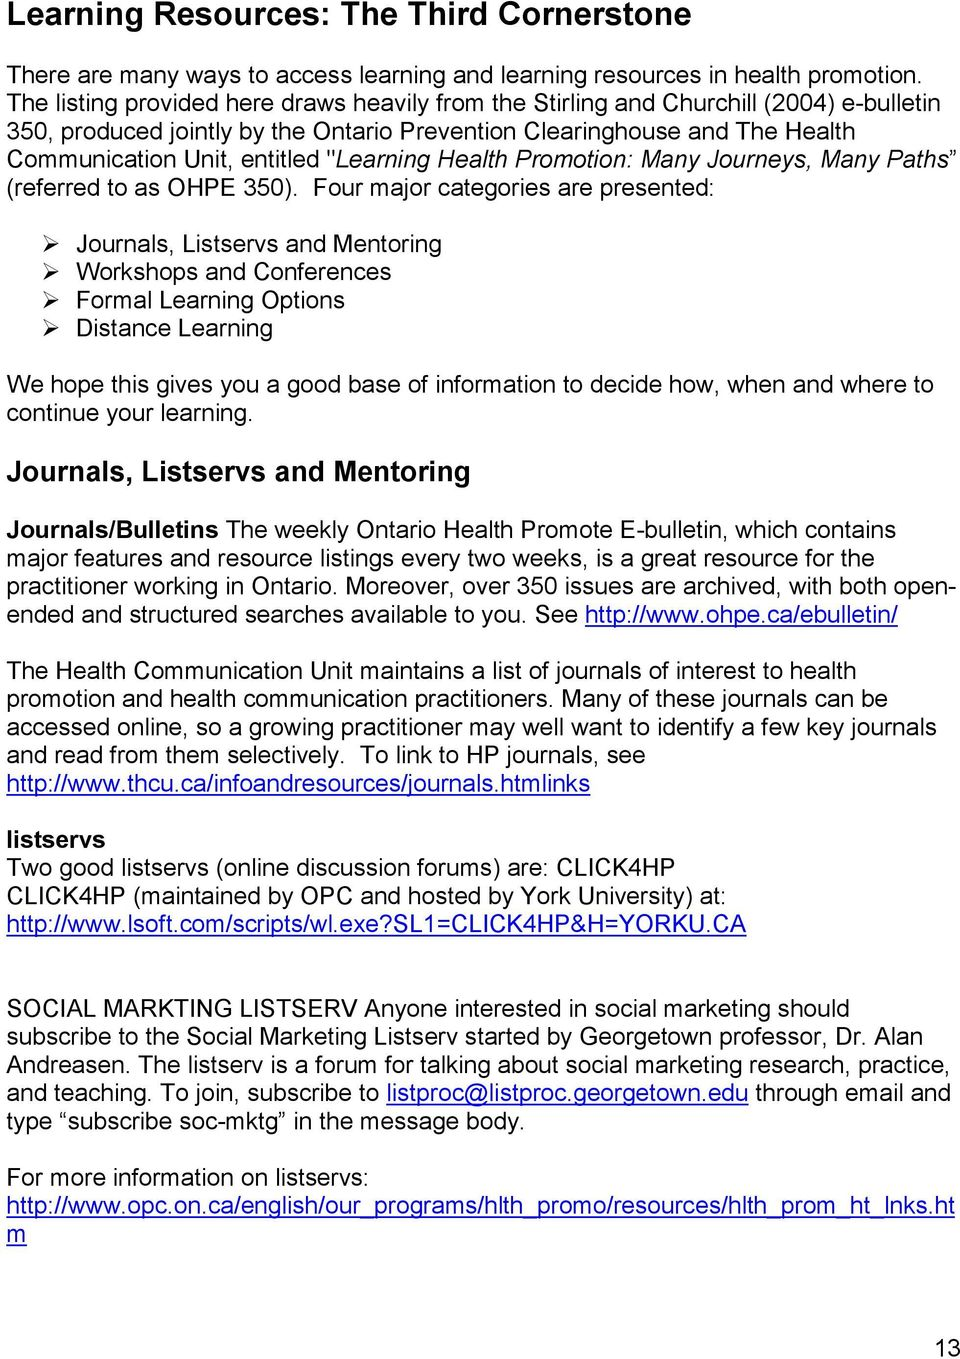 """Learning Health Promotion: Many Journeys, Many Paths (referred to as OHPE 350)."